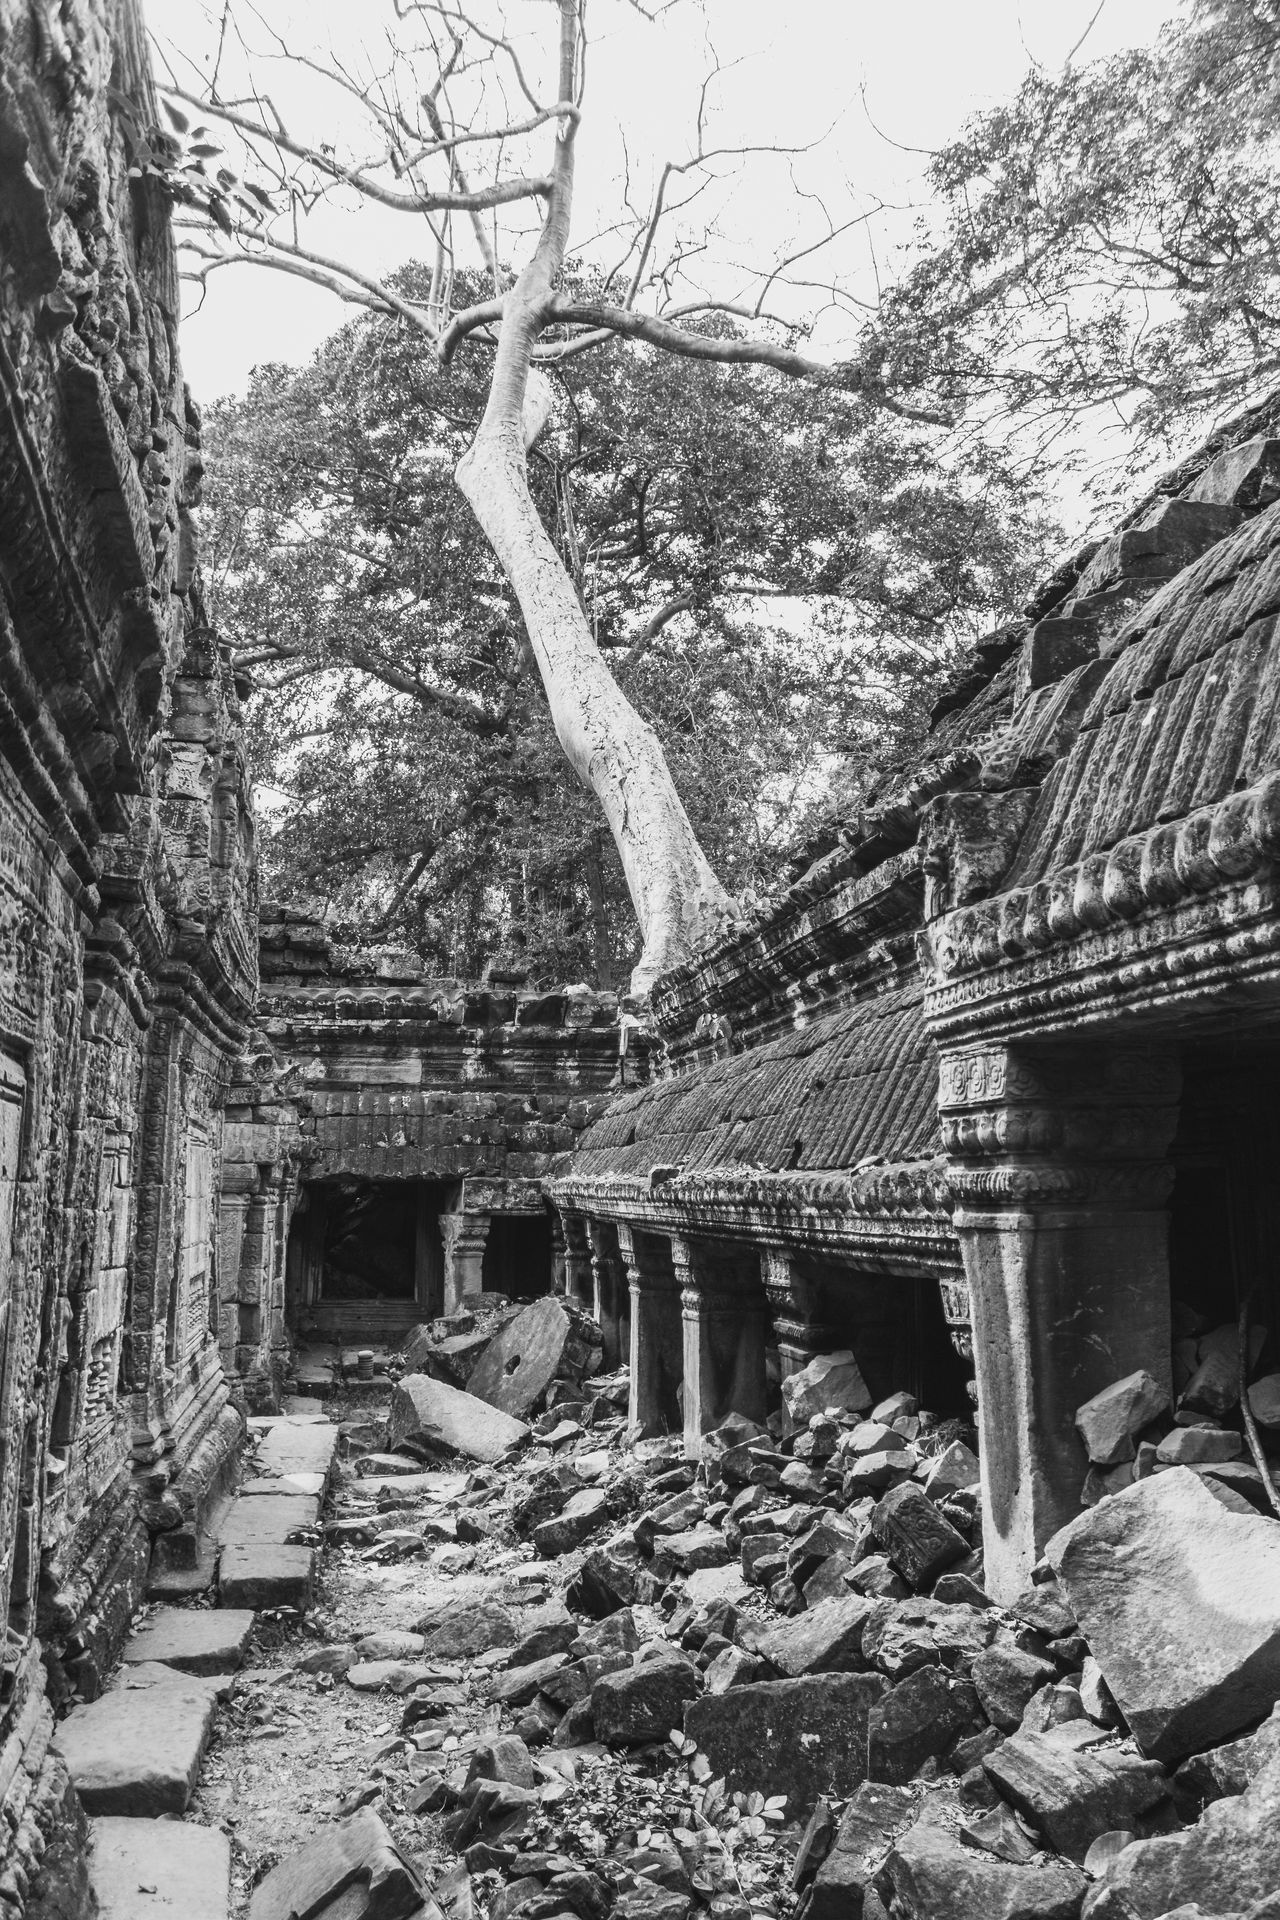 Angkor Architecture Blackandwhite Building Exterior Built Structure Cambodia Day History No People Outdoors Ruin Sky Stones Temple Tree Tree